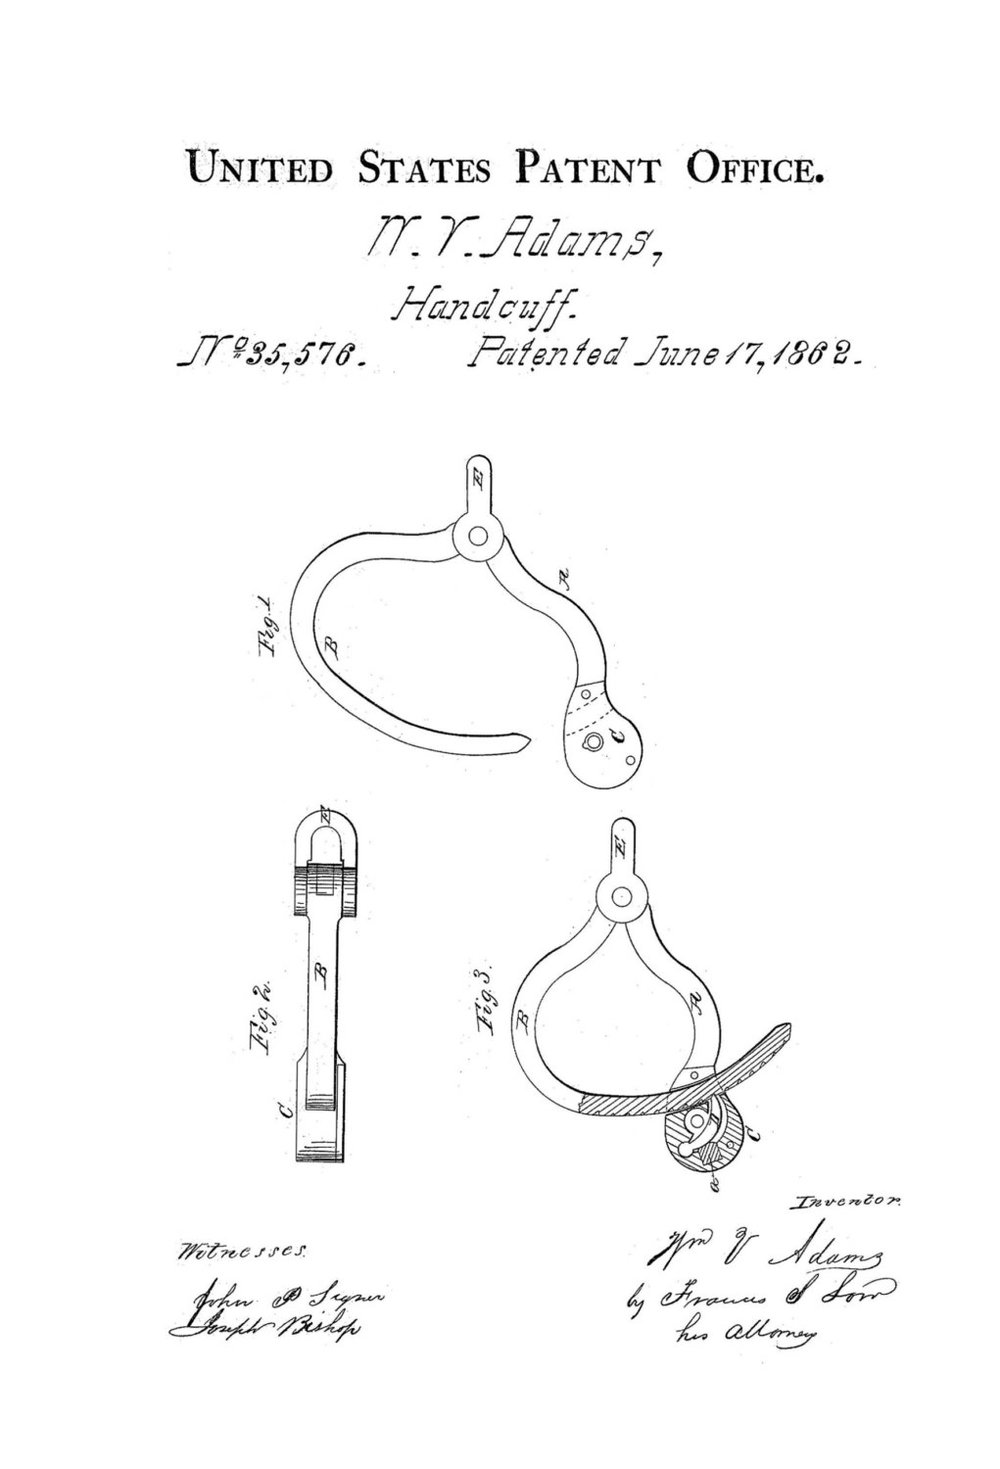 handcuffs-patent-patent-print-wall-decor-restraint-patent-law-enforcement-gift-police-officer-gift-hnadcuff-patent-575103603.jpg